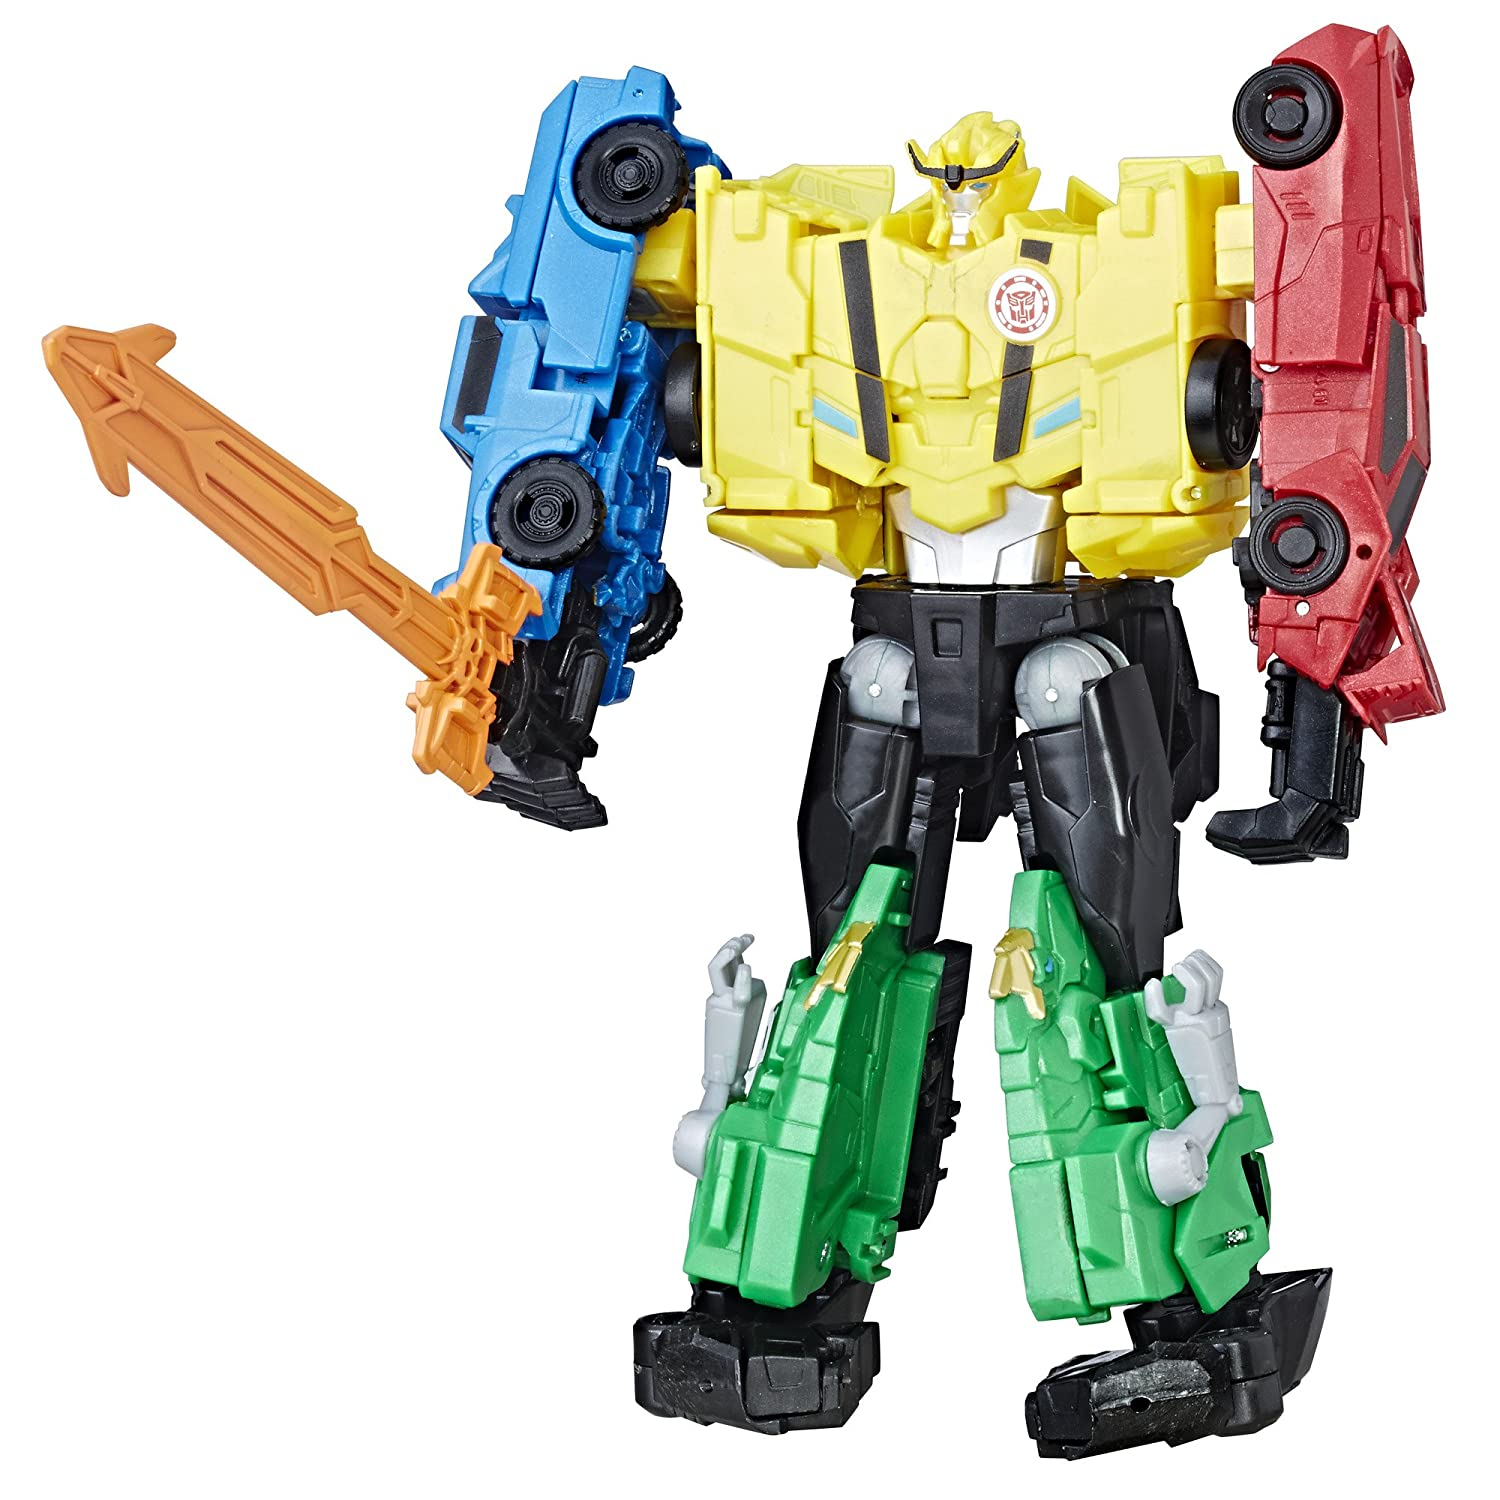 Transformers Toys Autobot Team Combiner Pack - 4 Figure Gift Set – Figures Combine into a Super Robot - Toys for Kids 6 and Up - 8.5 inch scale